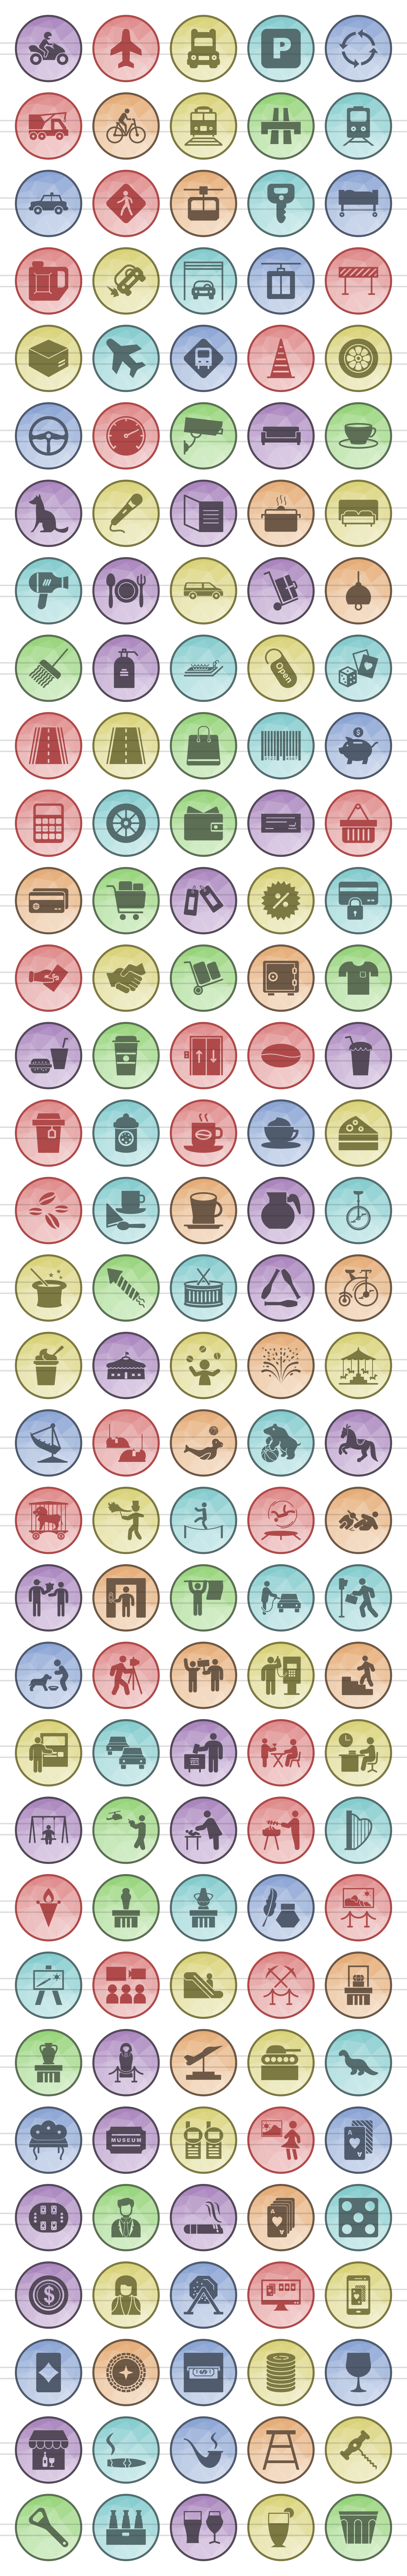 166 City Life Filled Low Poly Icons example image 2